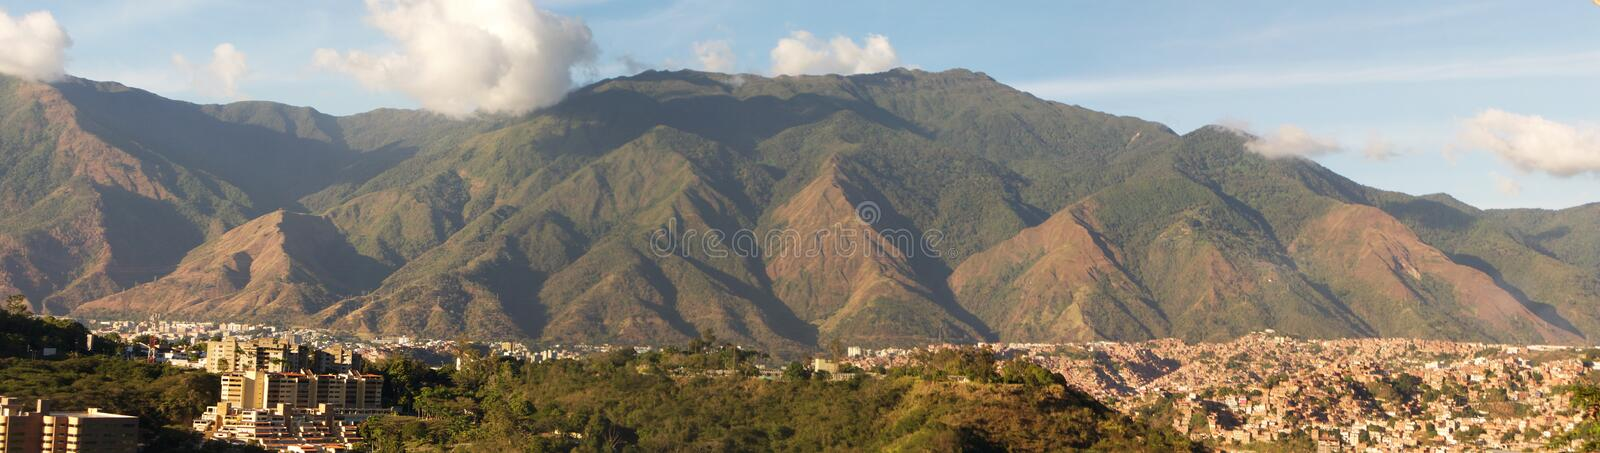 Panoramic view of Caracas and cerro El Avila National Park, famous mountain in Venezuela royalty free stock photography